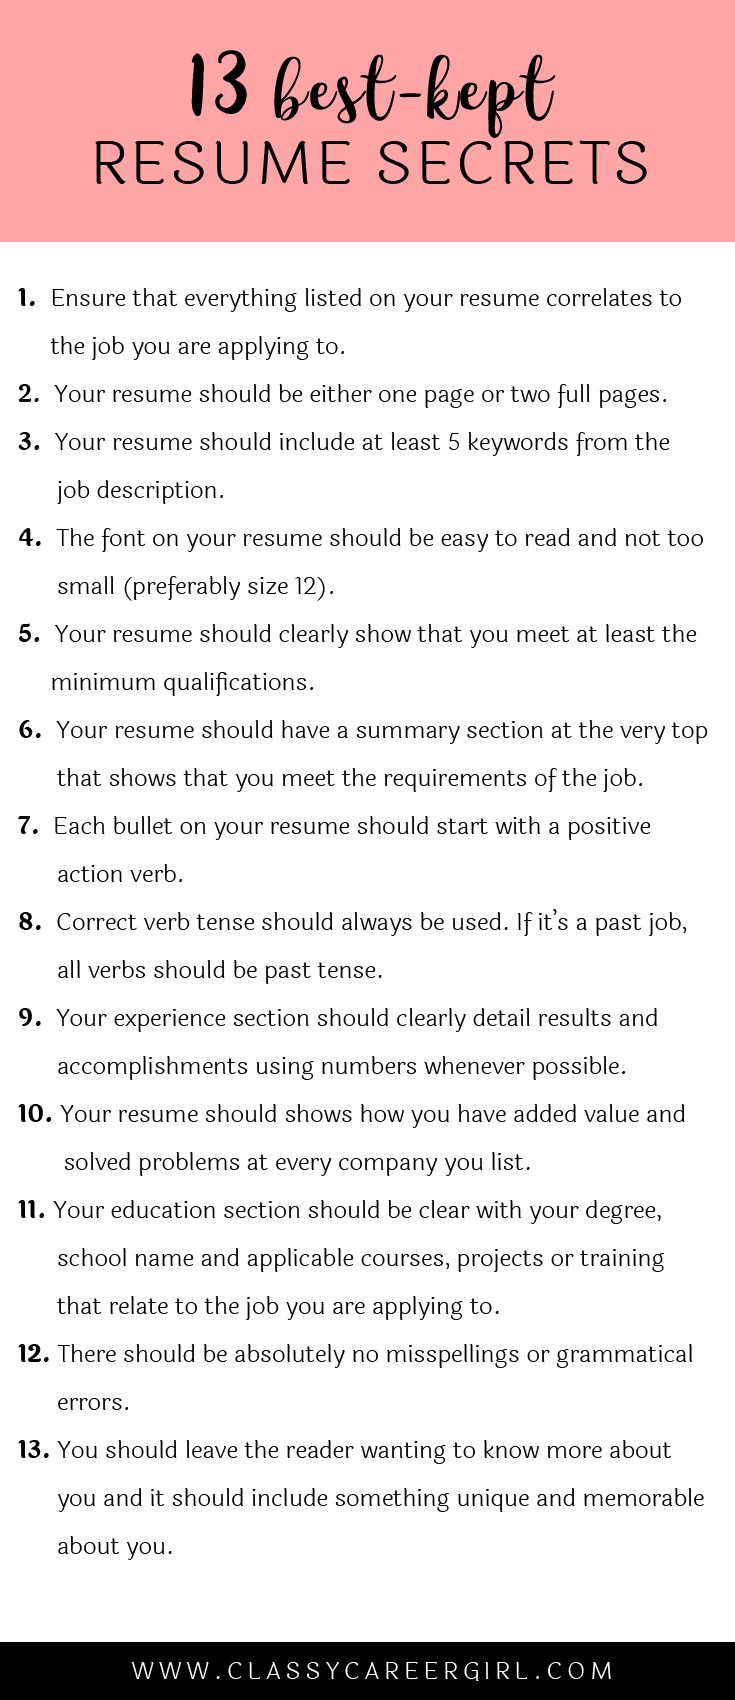 Opposenewapstandardsus  Picturesque  Ideas About Resume On Pinterest  Cv Format Resume Cv And  With Likable Some Hiring Managers Will Toss Your Resume Out If You Dont Know These  With Archaic Surgical Tech Resume Also Food Server Resume In Addition It Resume Sample And Cool Resume As Well As What Is A Job Resume Additionally Dentist Resume From Pinterestcom With Opposenewapstandardsus  Likable  Ideas About Resume On Pinterest  Cv Format Resume Cv And  With Archaic Some Hiring Managers Will Toss Your Resume Out If You Dont Know These  And Picturesque Surgical Tech Resume Also Food Server Resume In Addition It Resume Sample From Pinterestcom